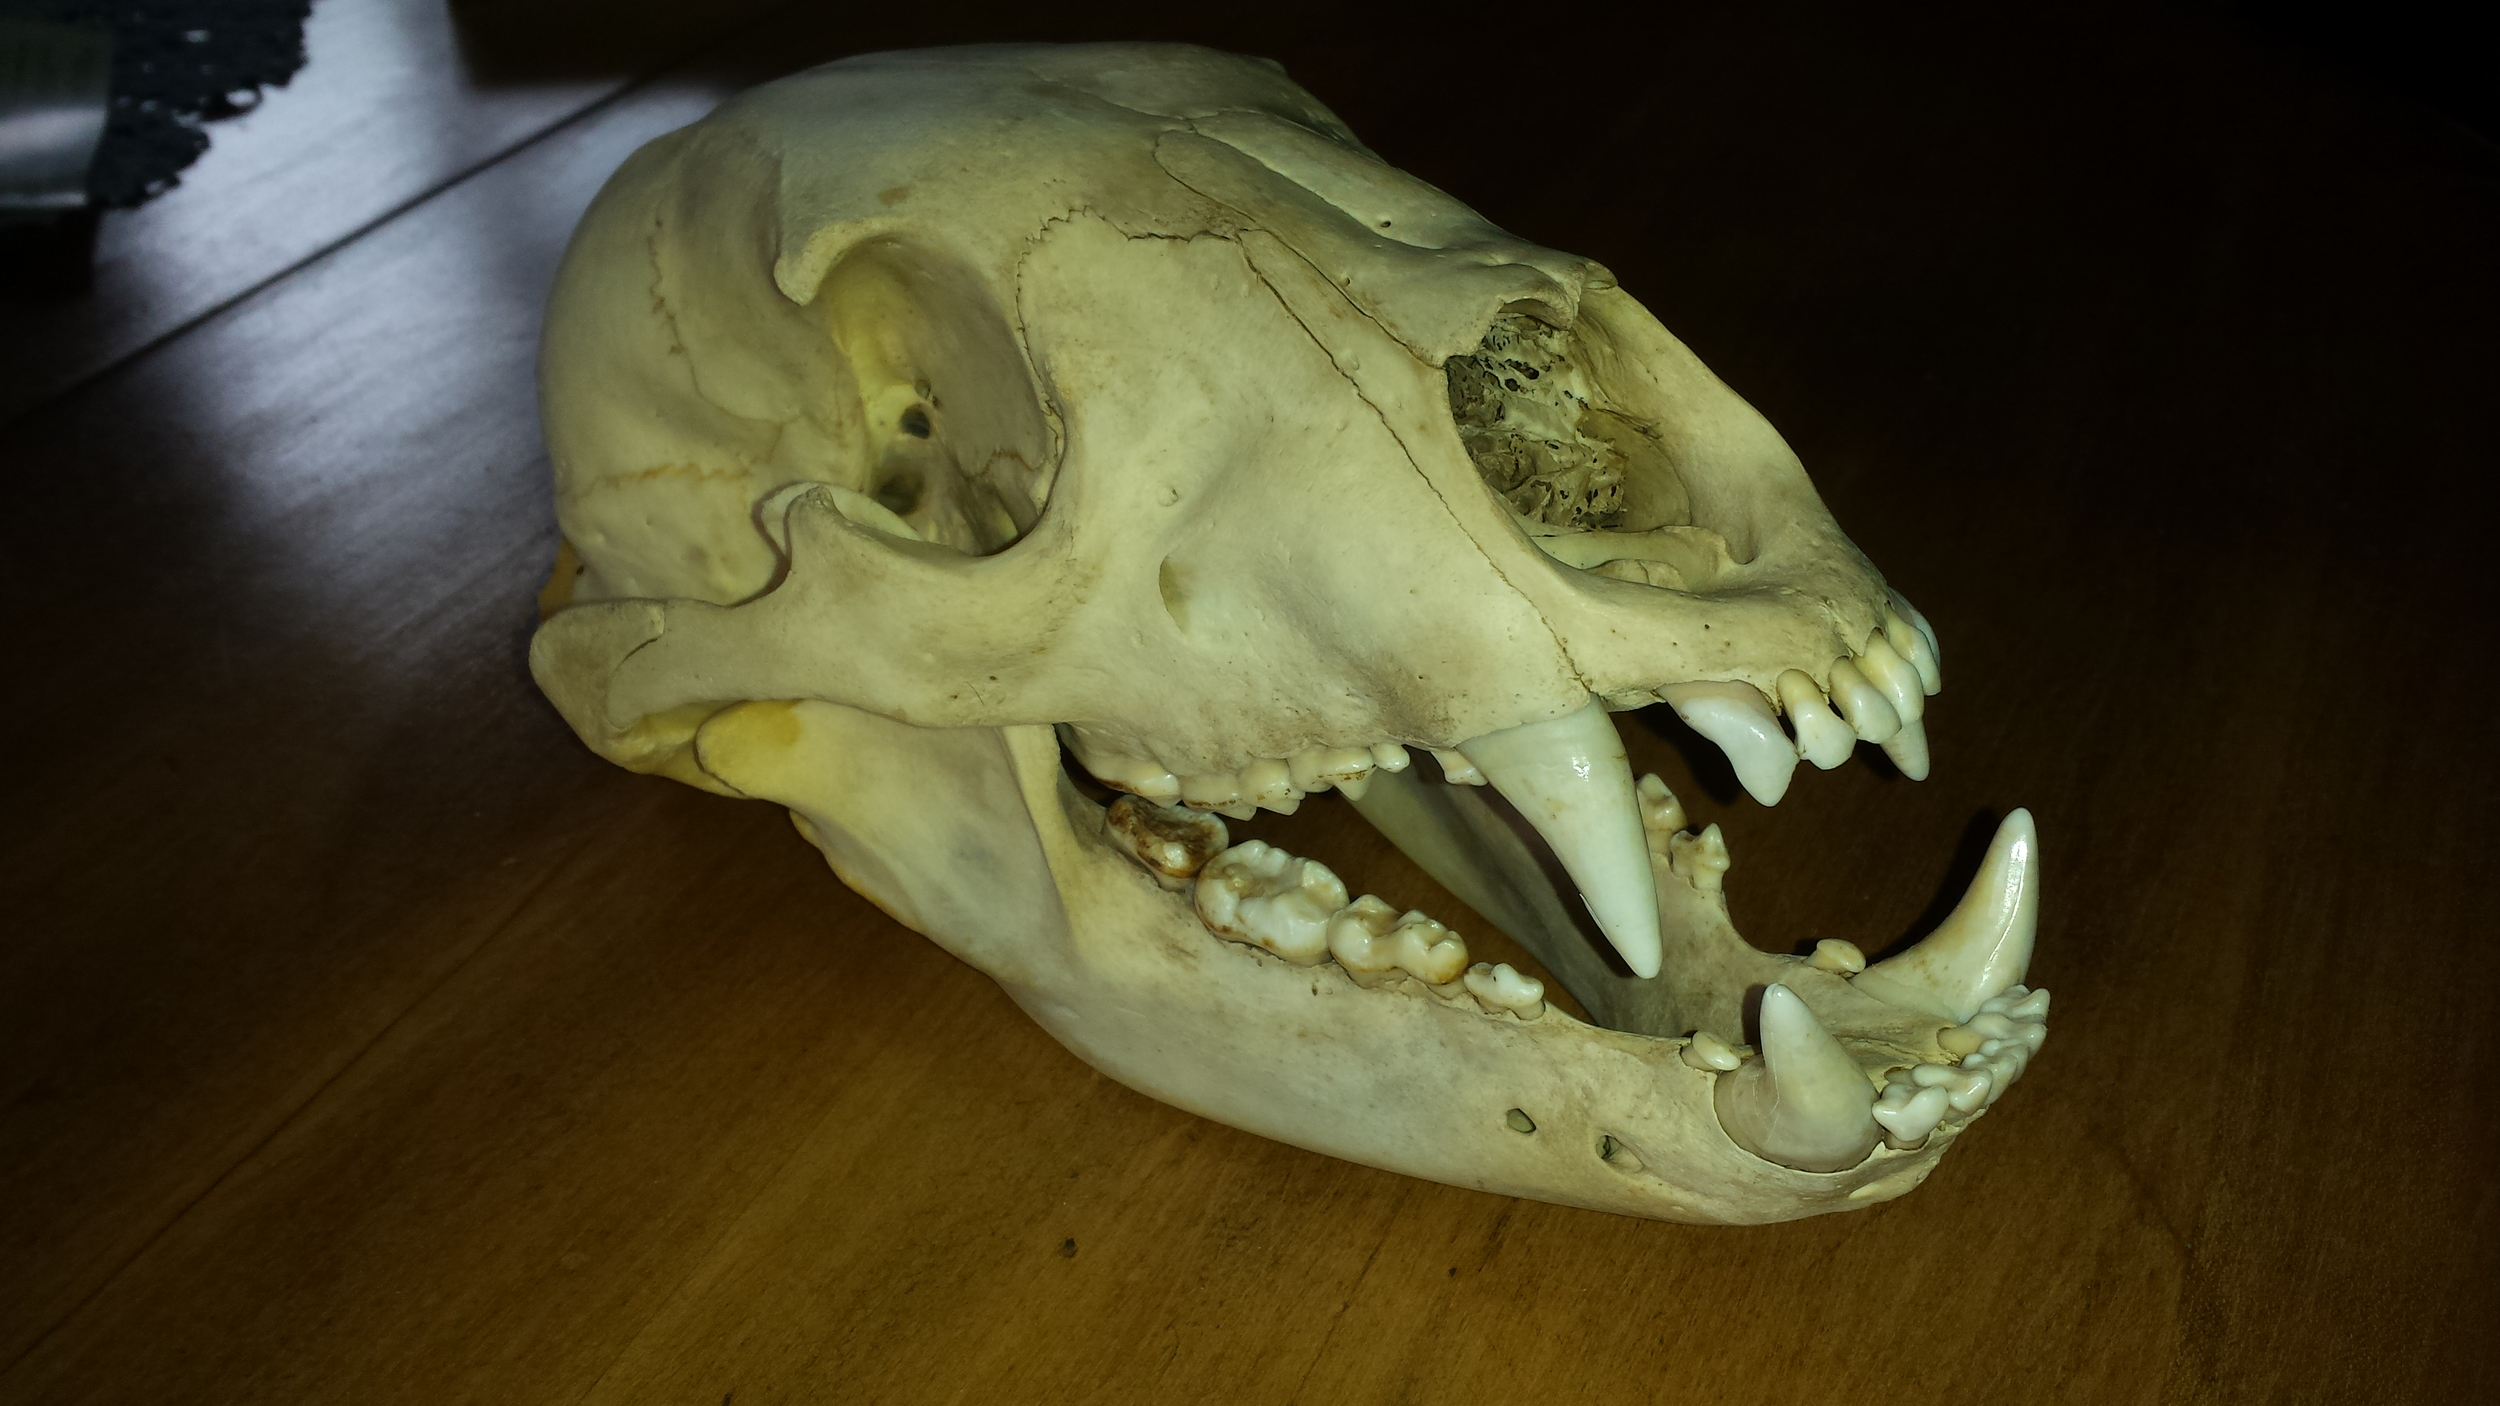 Black bear before degreasing stage. Notice the yellow colours around the back of the jaw and yellow tint of the skull.